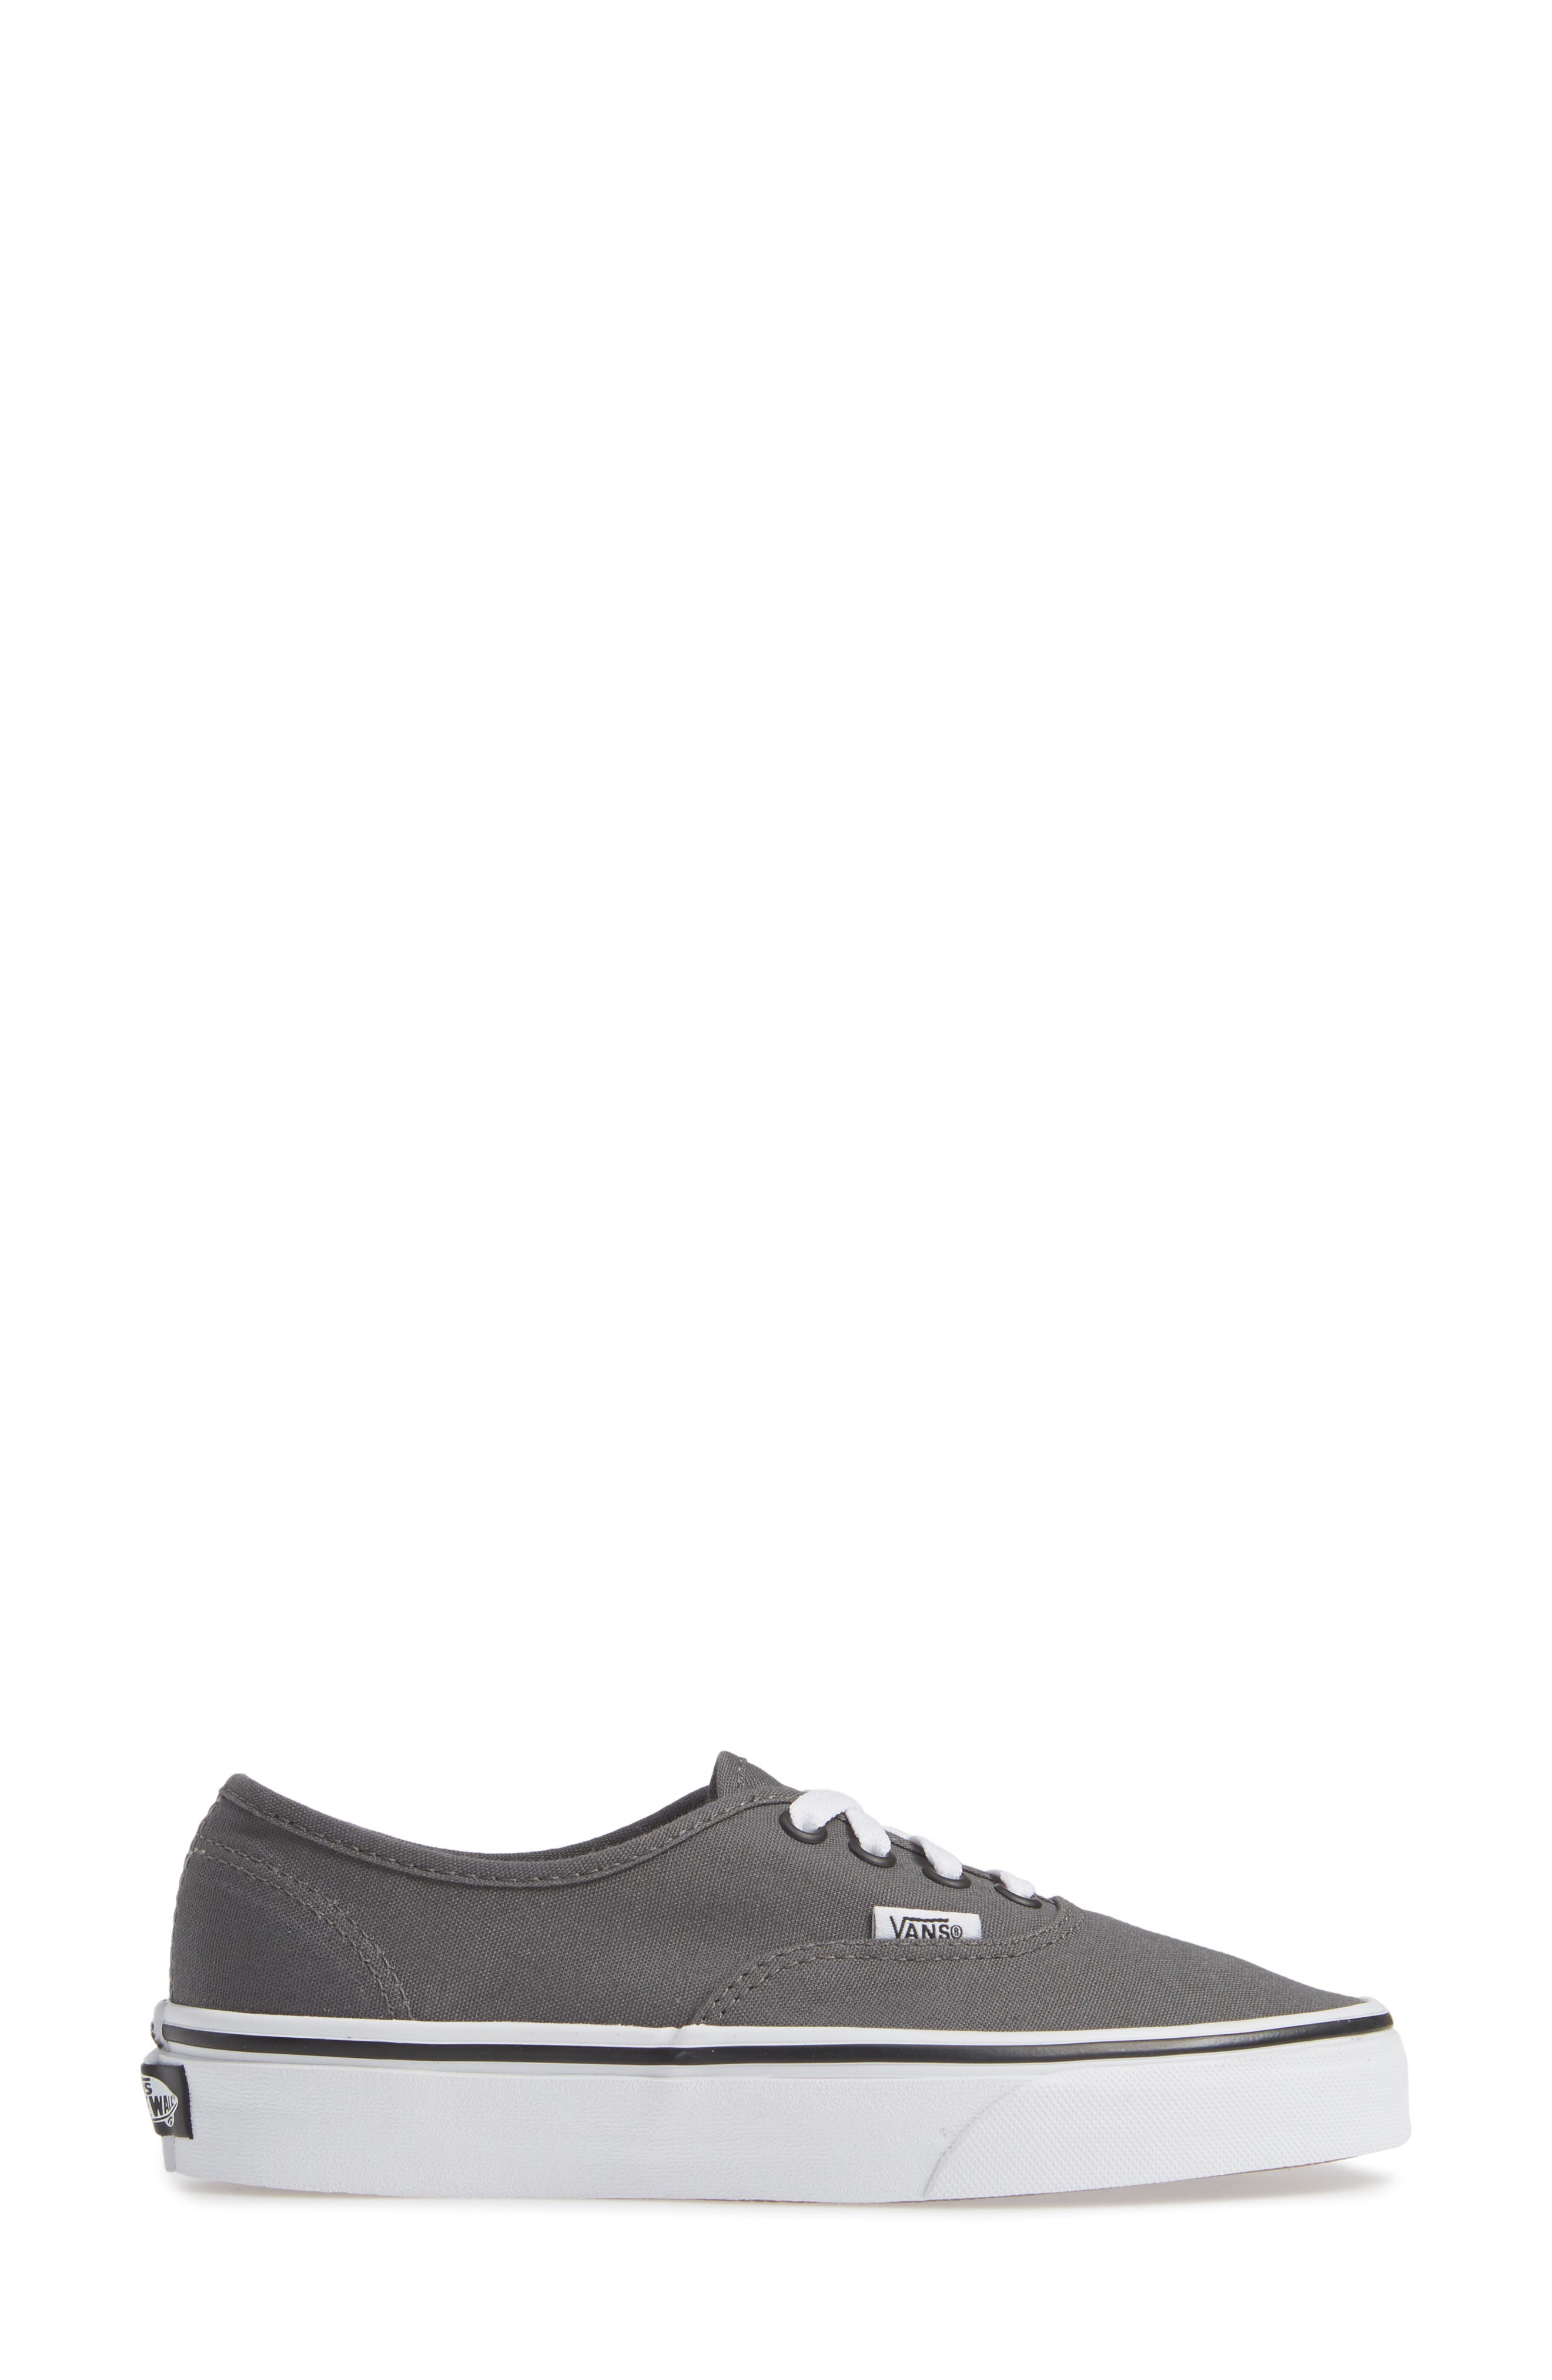 VANS, 'Authentic' Sneaker, Alternate thumbnail 4, color, PEWTER/BLACK